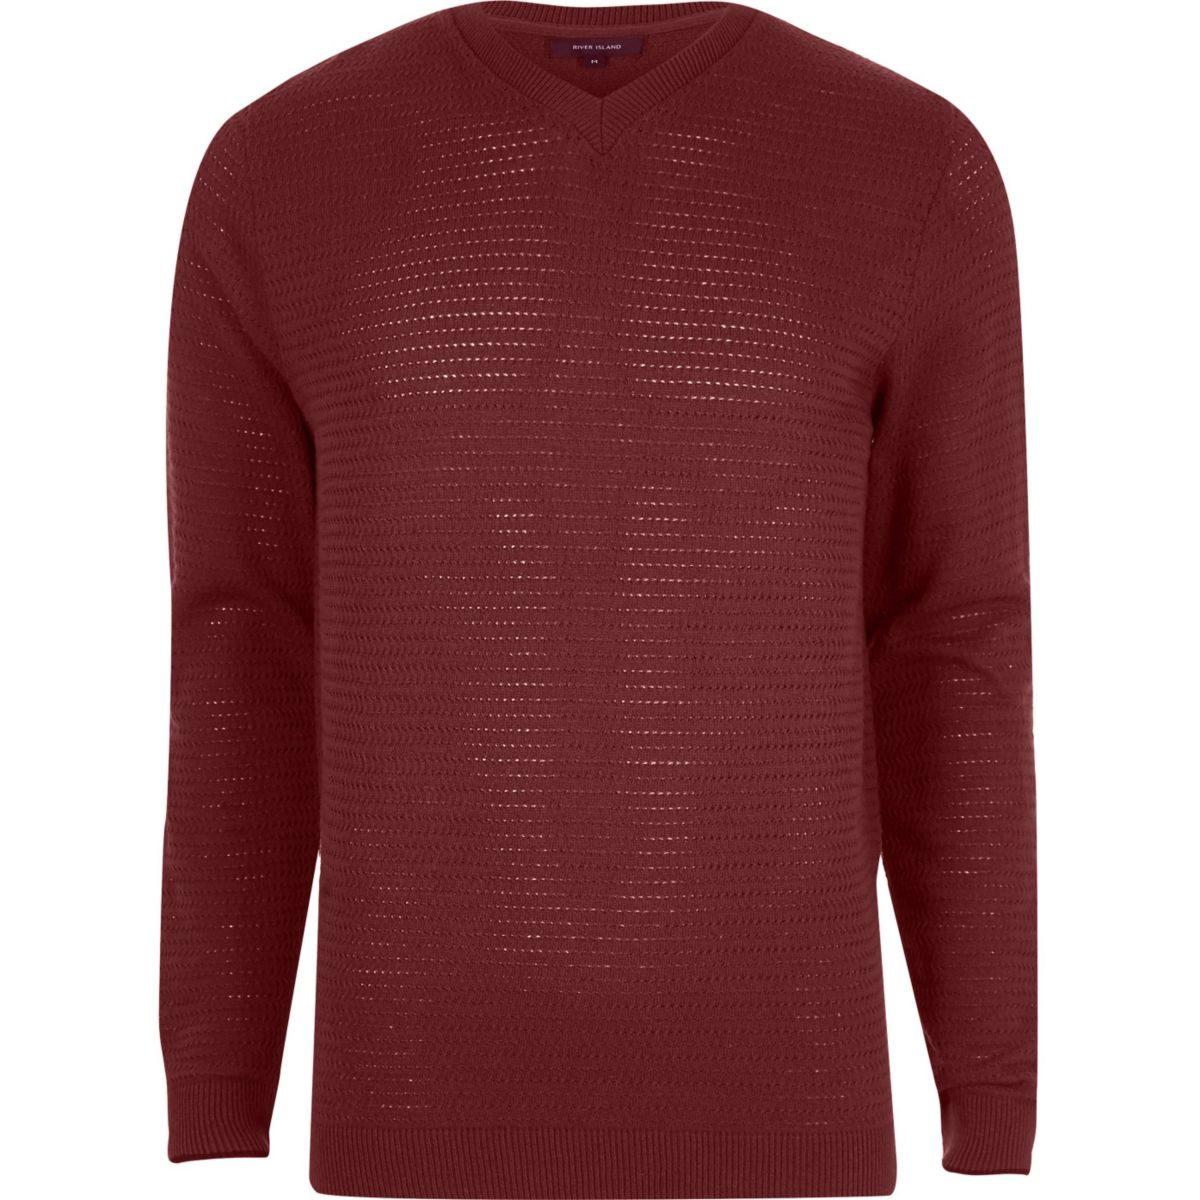 Red textured knit V neck slim fit sweater